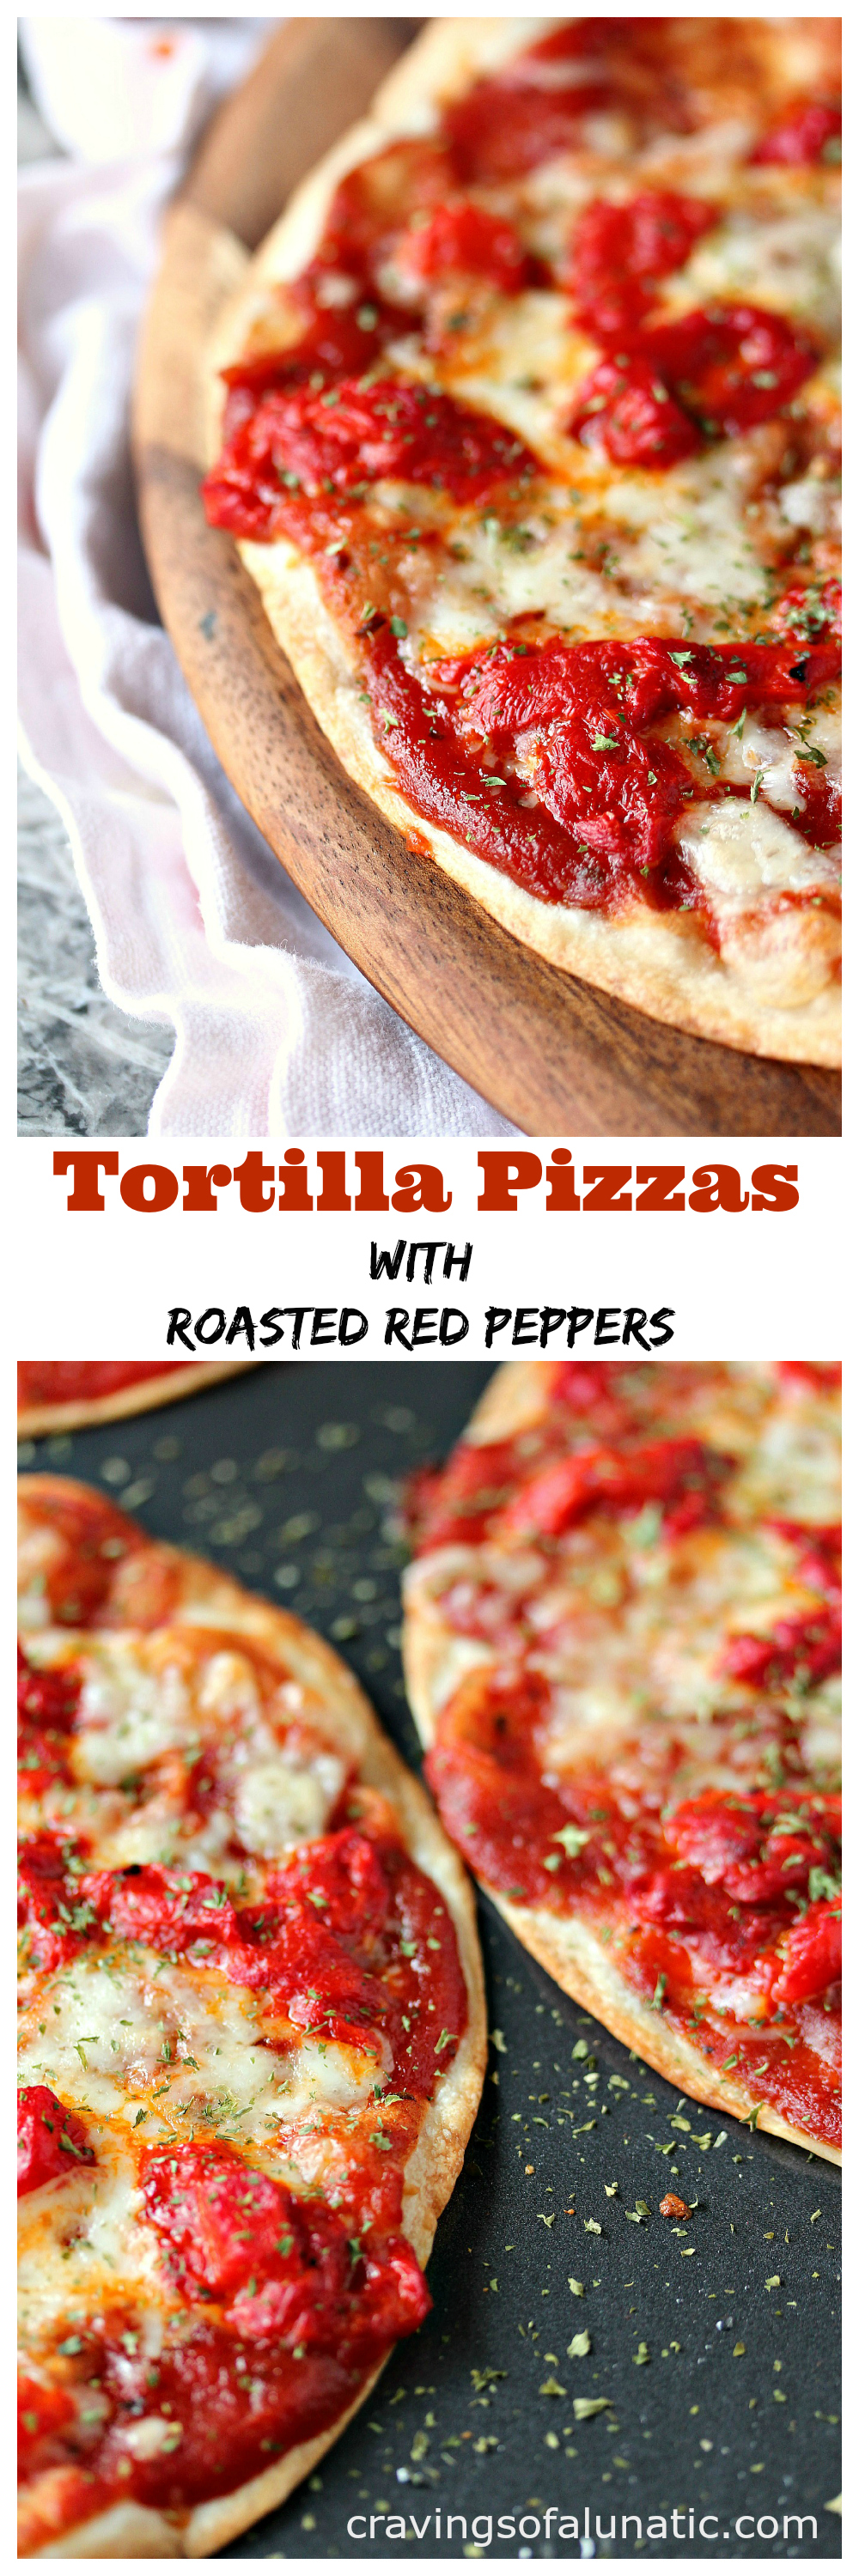 Tortilla Pizzas with Roasted Red Peppers from cravingsofalunatic.com- This recipe is perfect for busy nights where you want a delicious meal in a snap. It's incredibly easy to make and full of flavour. Whip up some Tortilla Pizzas with Roasted Red Peppers today. (@CravingsLunatic)